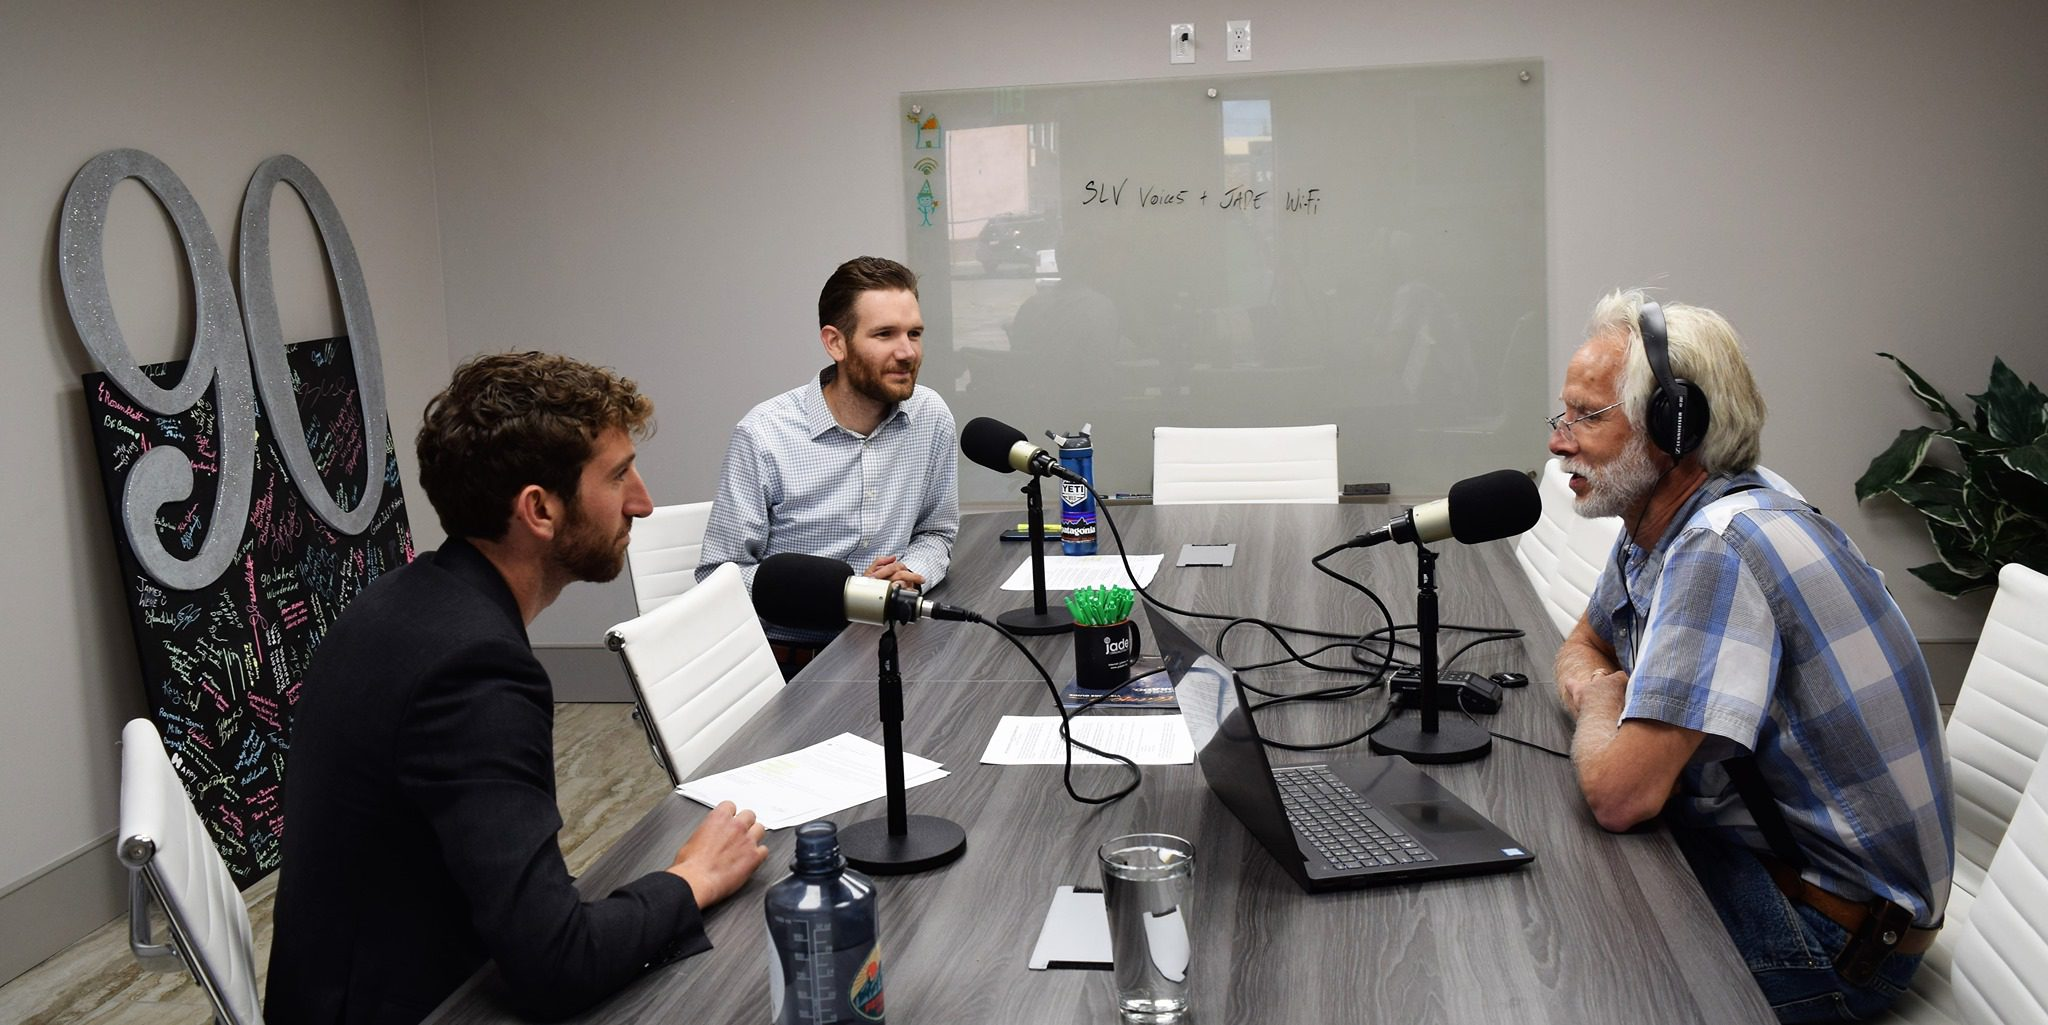 SLV Voices Interviews Jordan Wehe and Josh Wehe at Jade Communications about Jade Wi-Fi